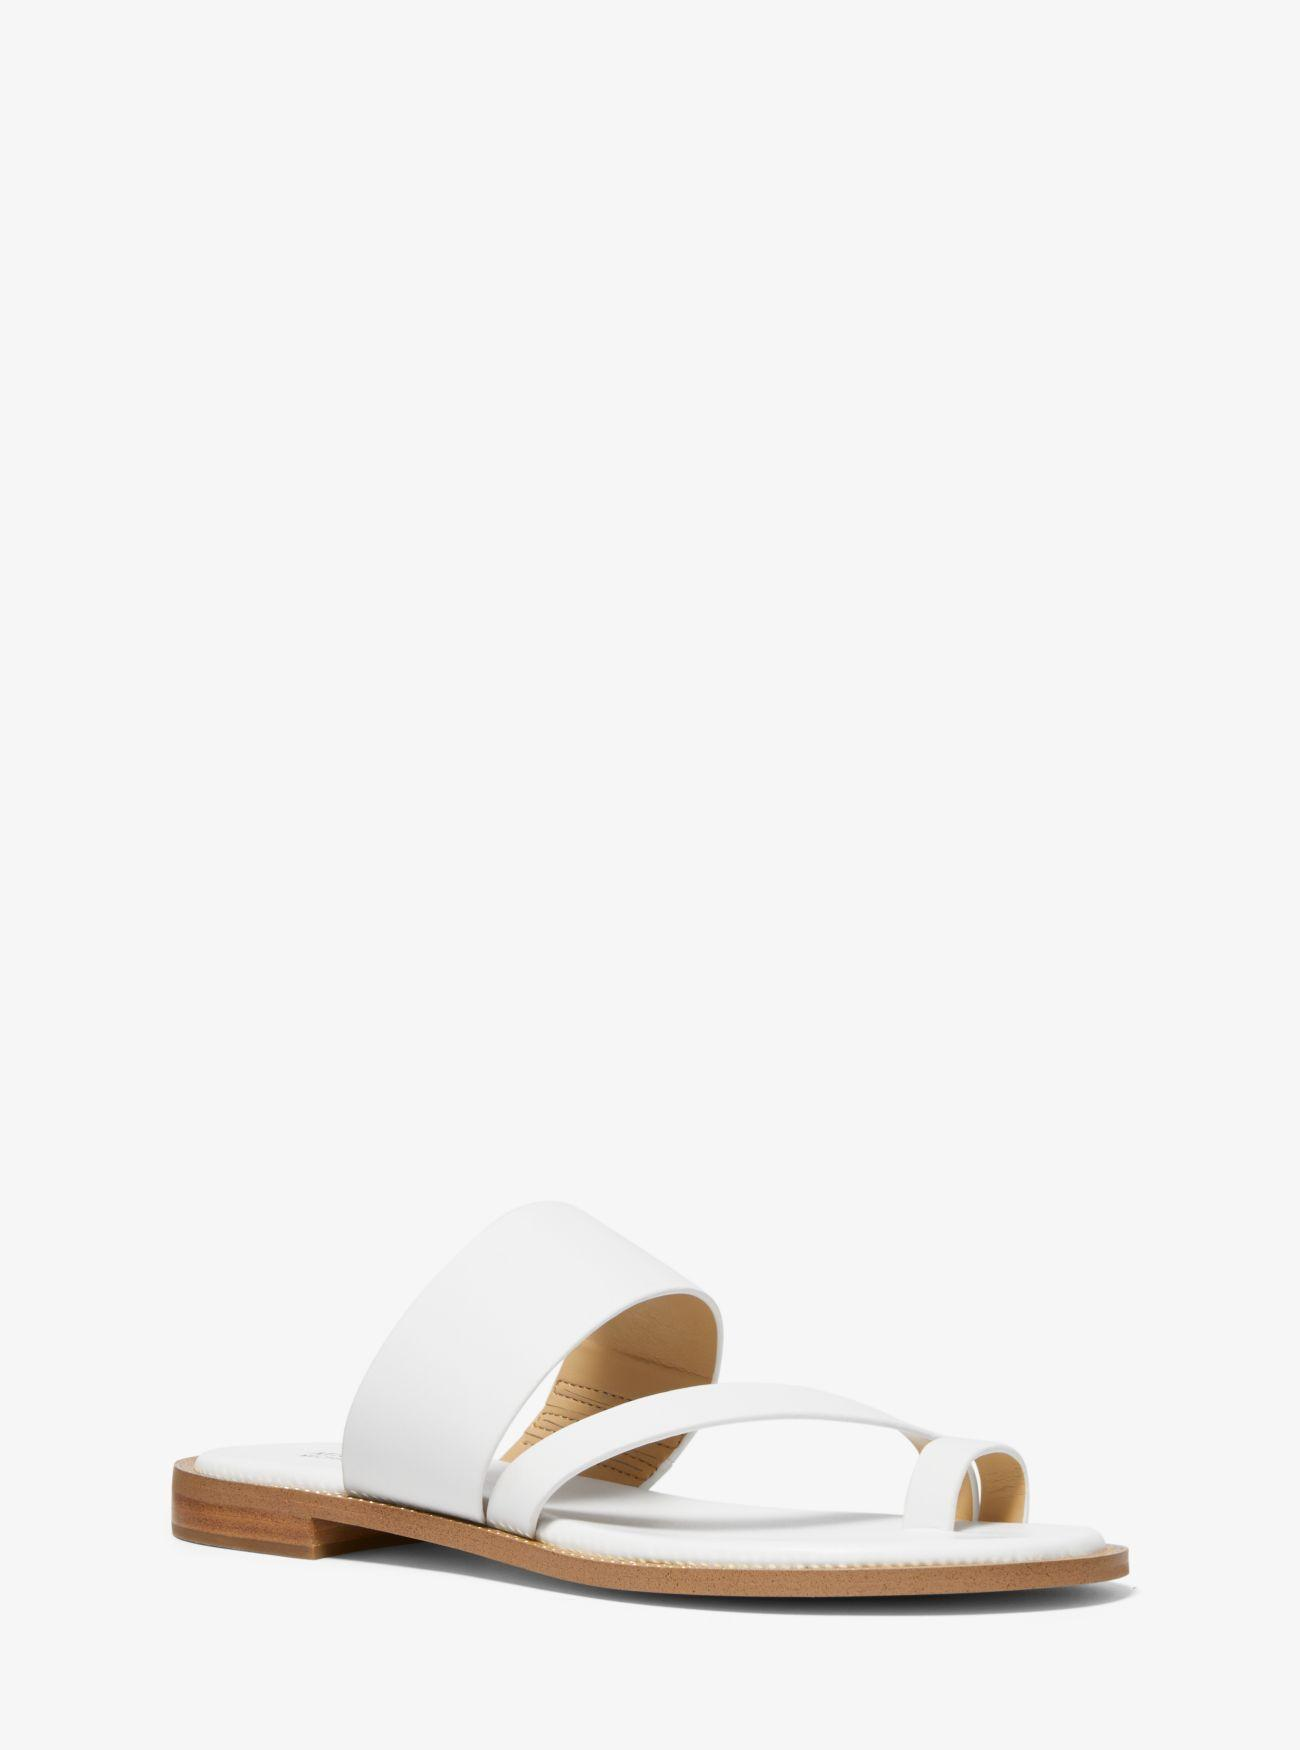 e9e67011c64b Lyst - MICHAEL Michael Kors Pratt Leather Sandal in White